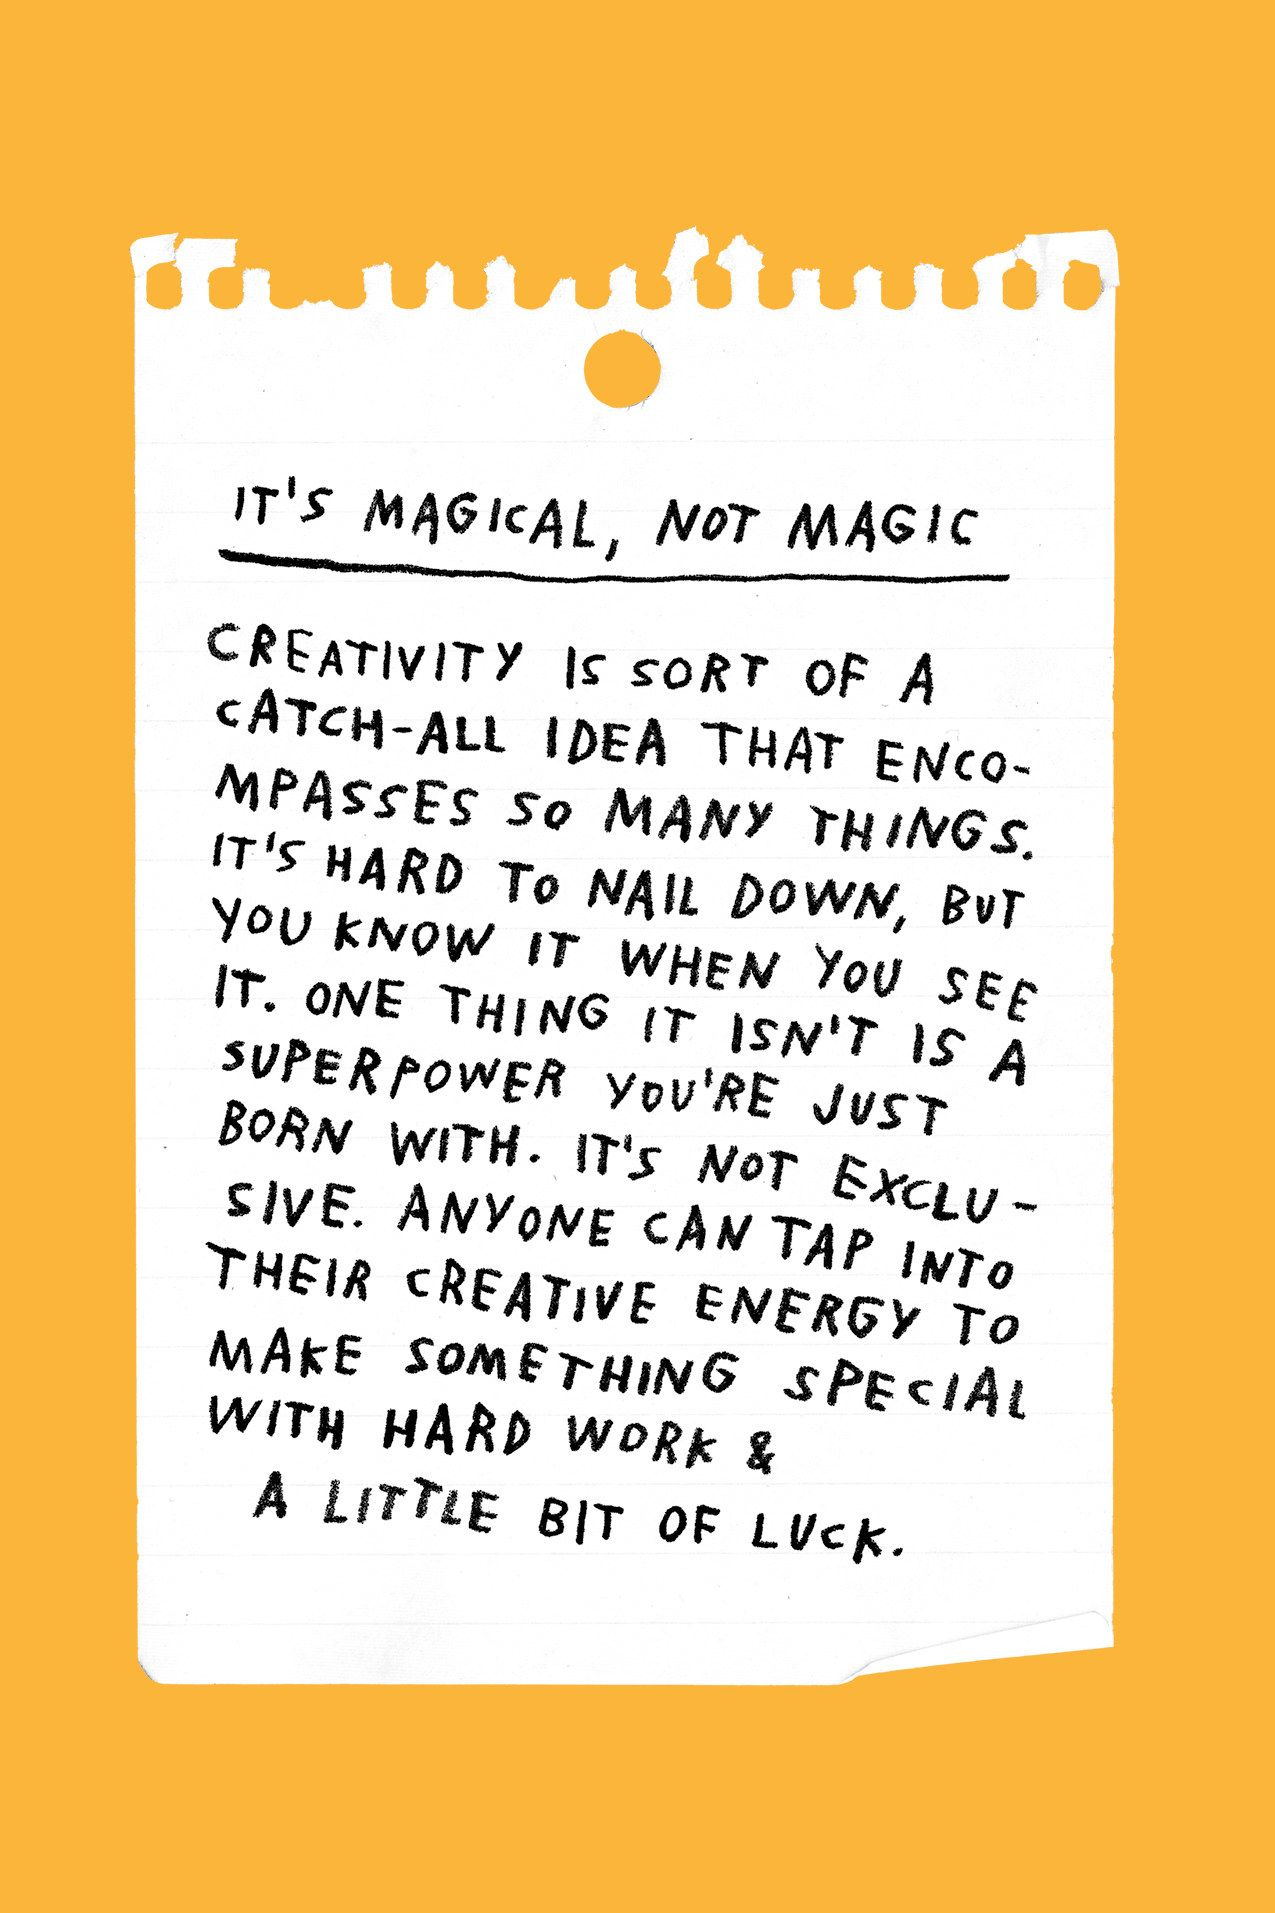 9 Pieces Of Advice That Will Get You Past A Creative Slump | Food